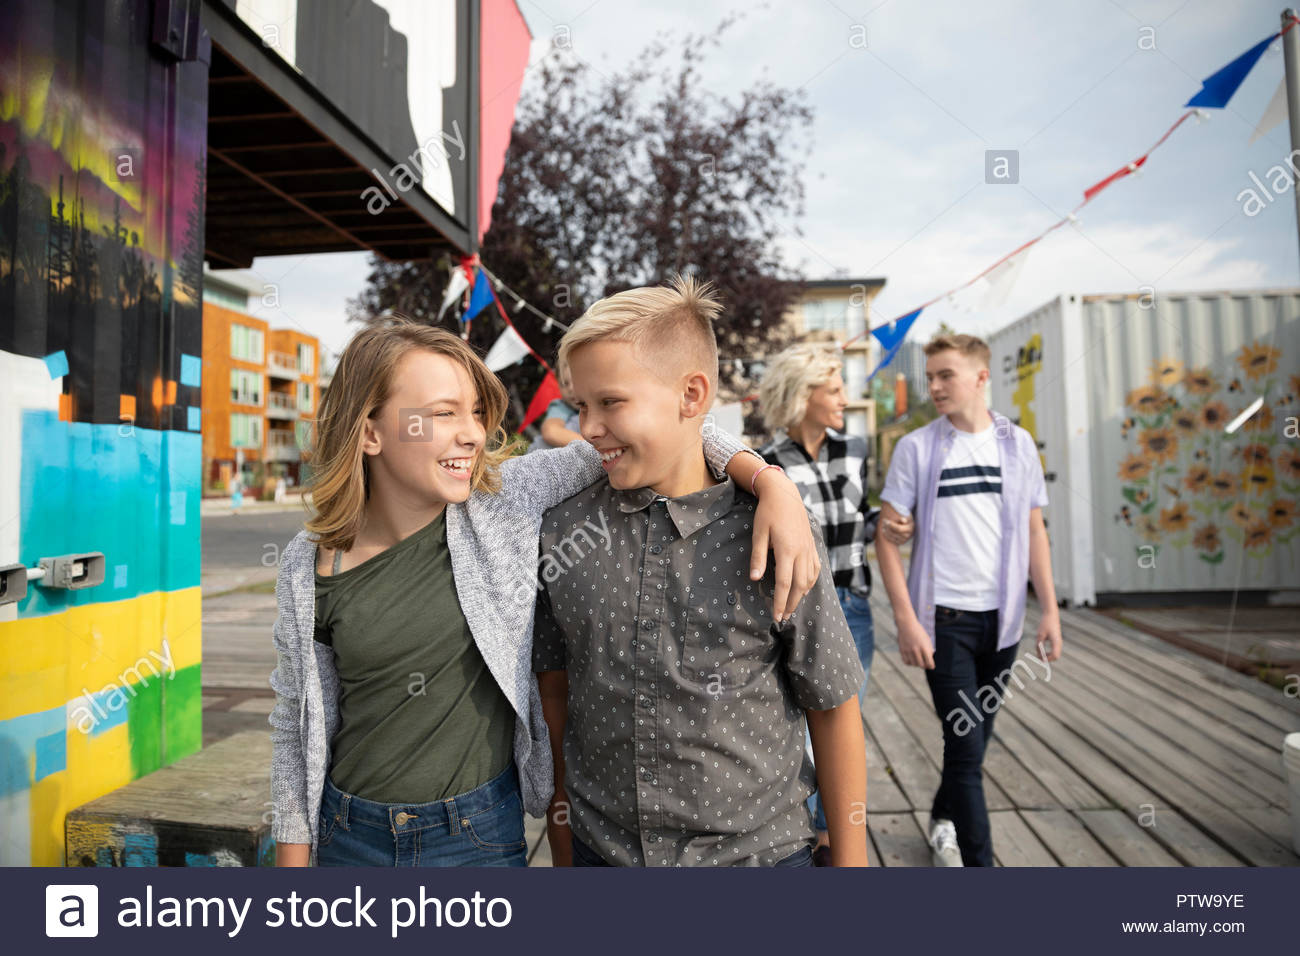 Affectionate brother and sister walking at carnival - Stock Image